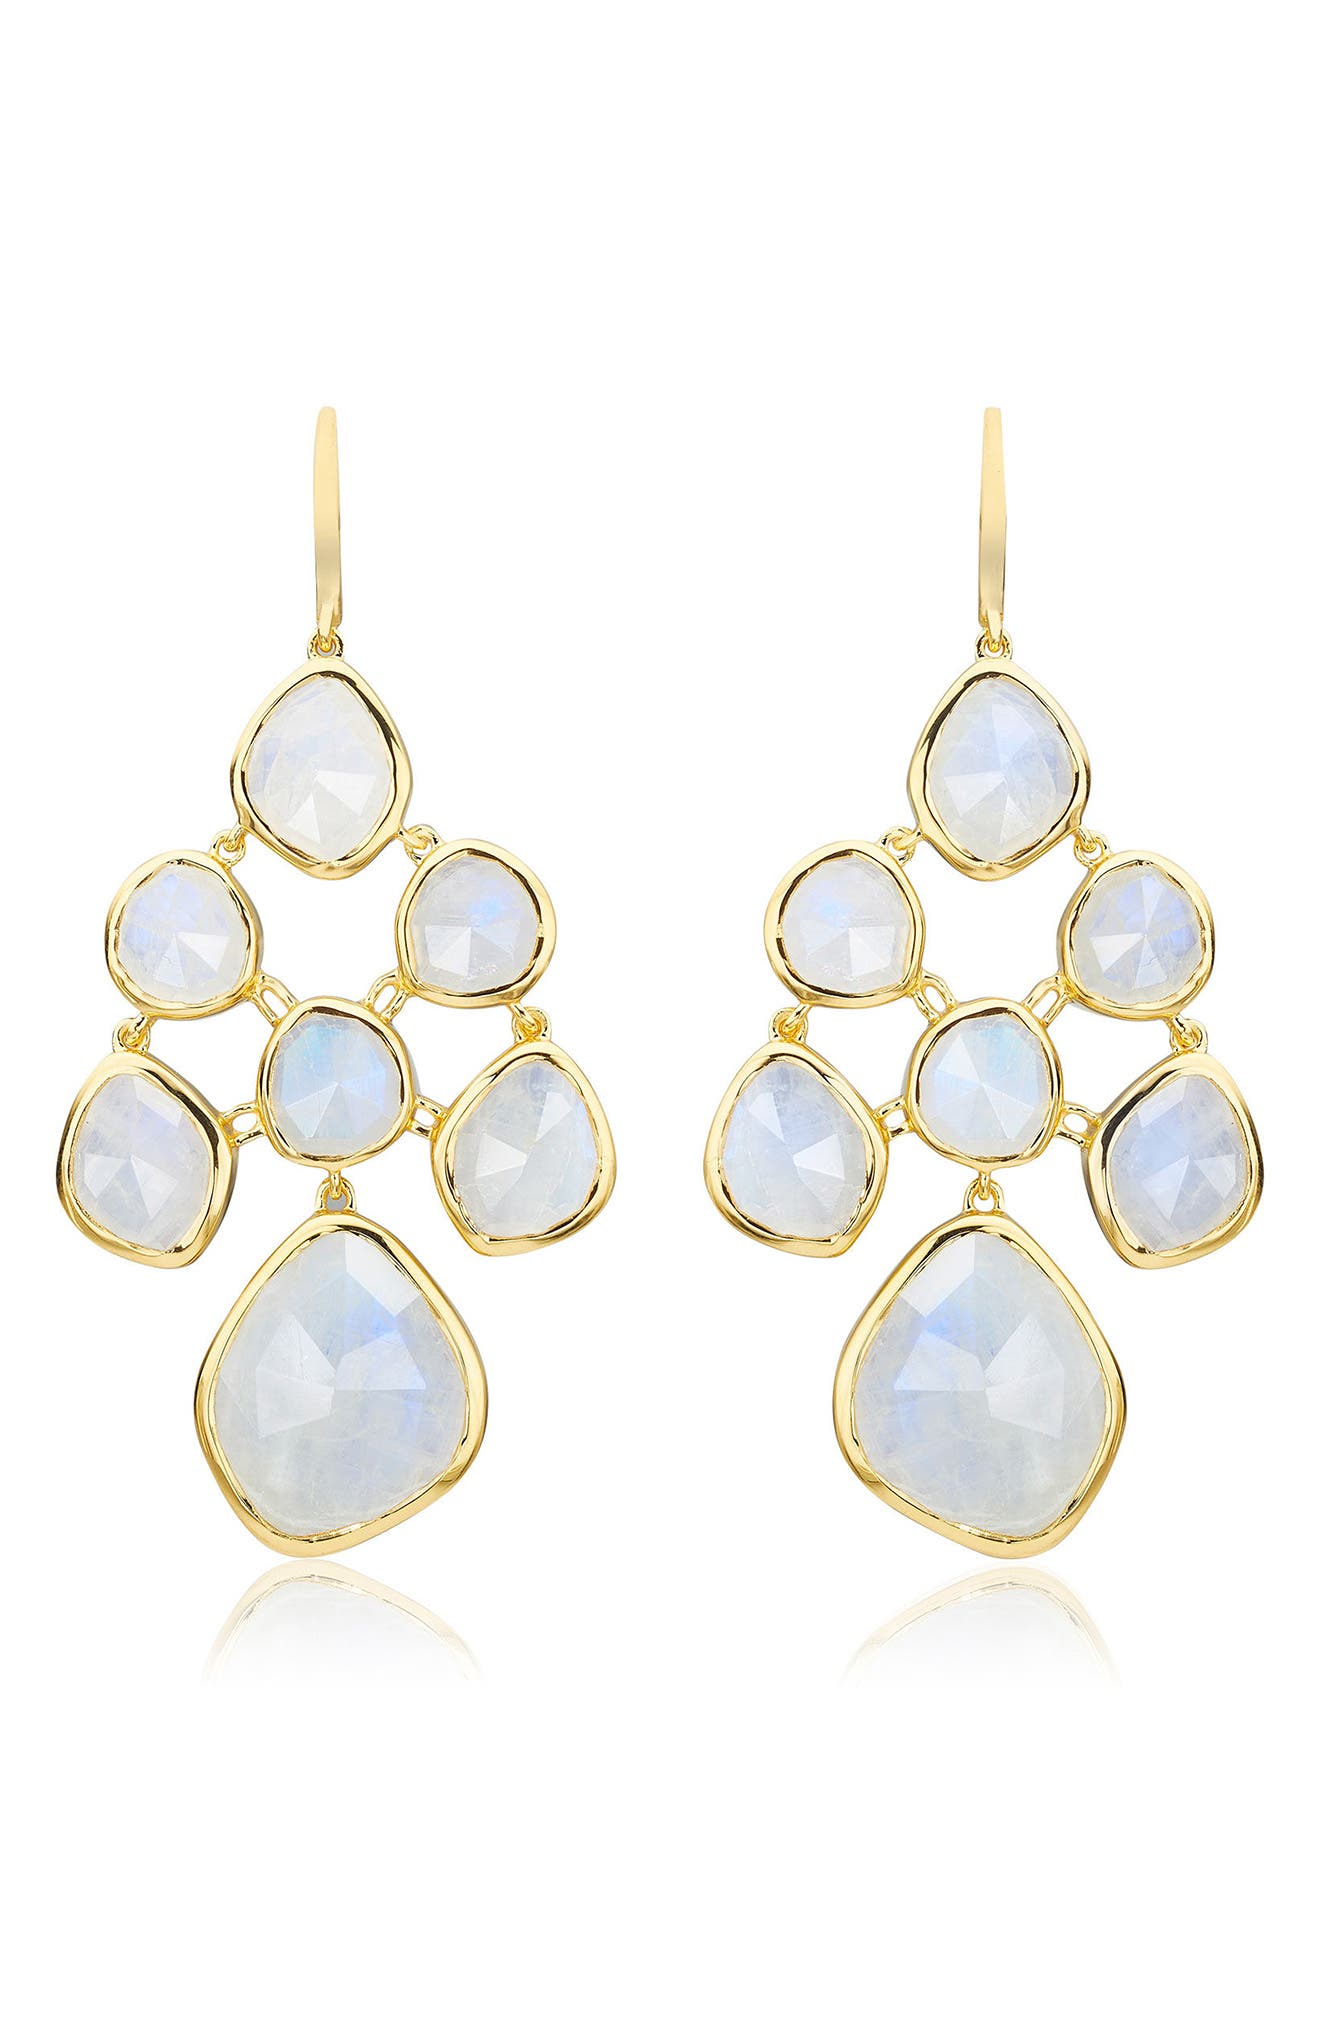 Siren Chandelier Earrings,                         Main,                         color, YELLOW GOLD/ MOONSTONE